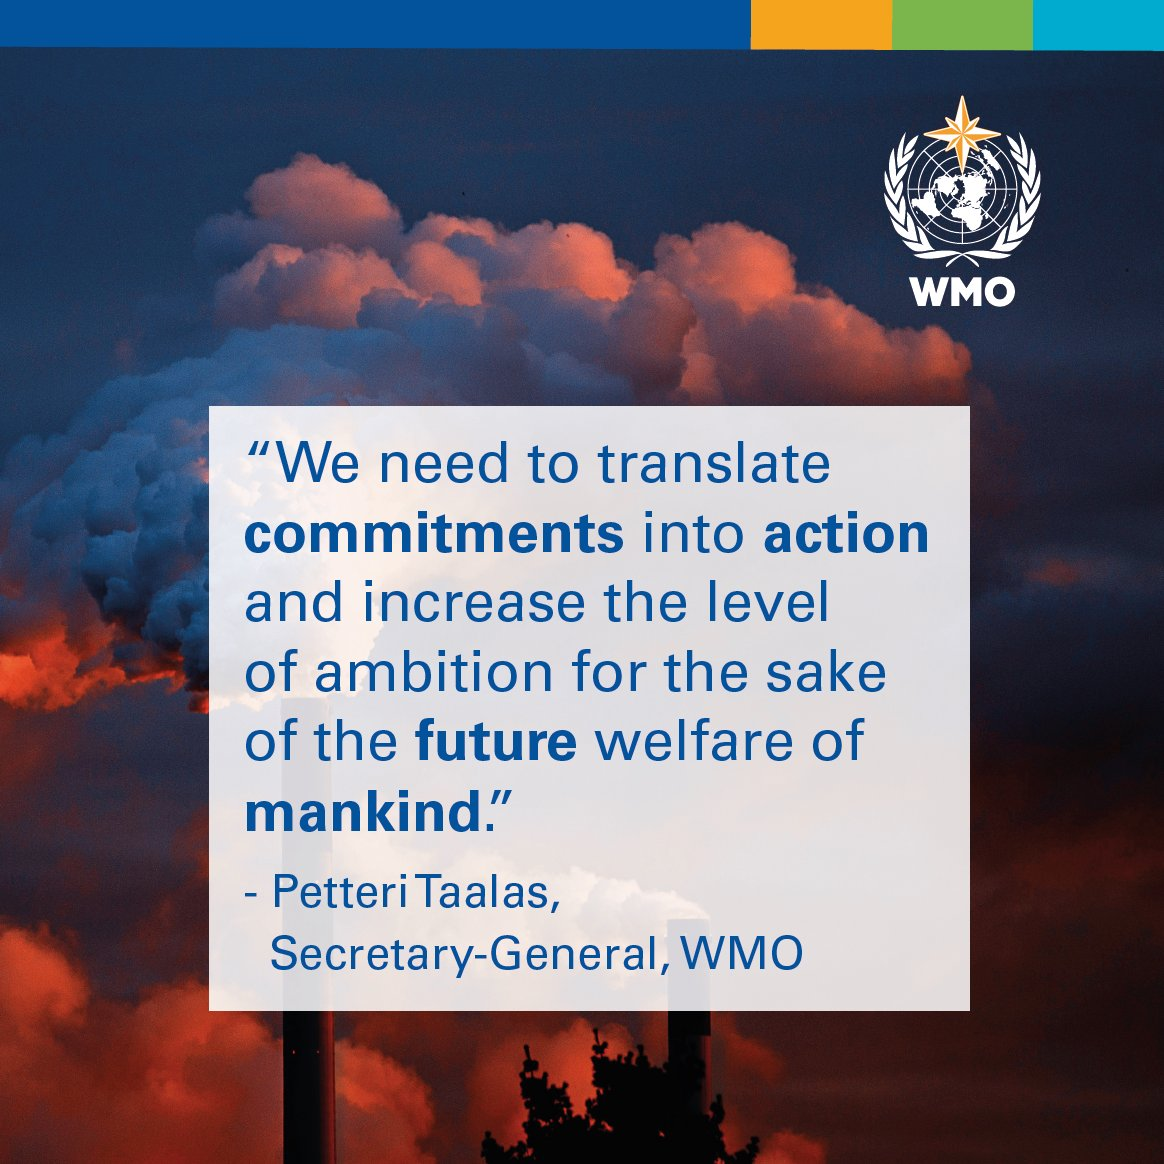 """""""We are moving to a temperature increase of 3 to 5°C degrees by the end of century, WMO SG Petteri Taalas tells opening session of #COP25 high-level segment,"""" said Mr Taalas. #ClimateAction"""